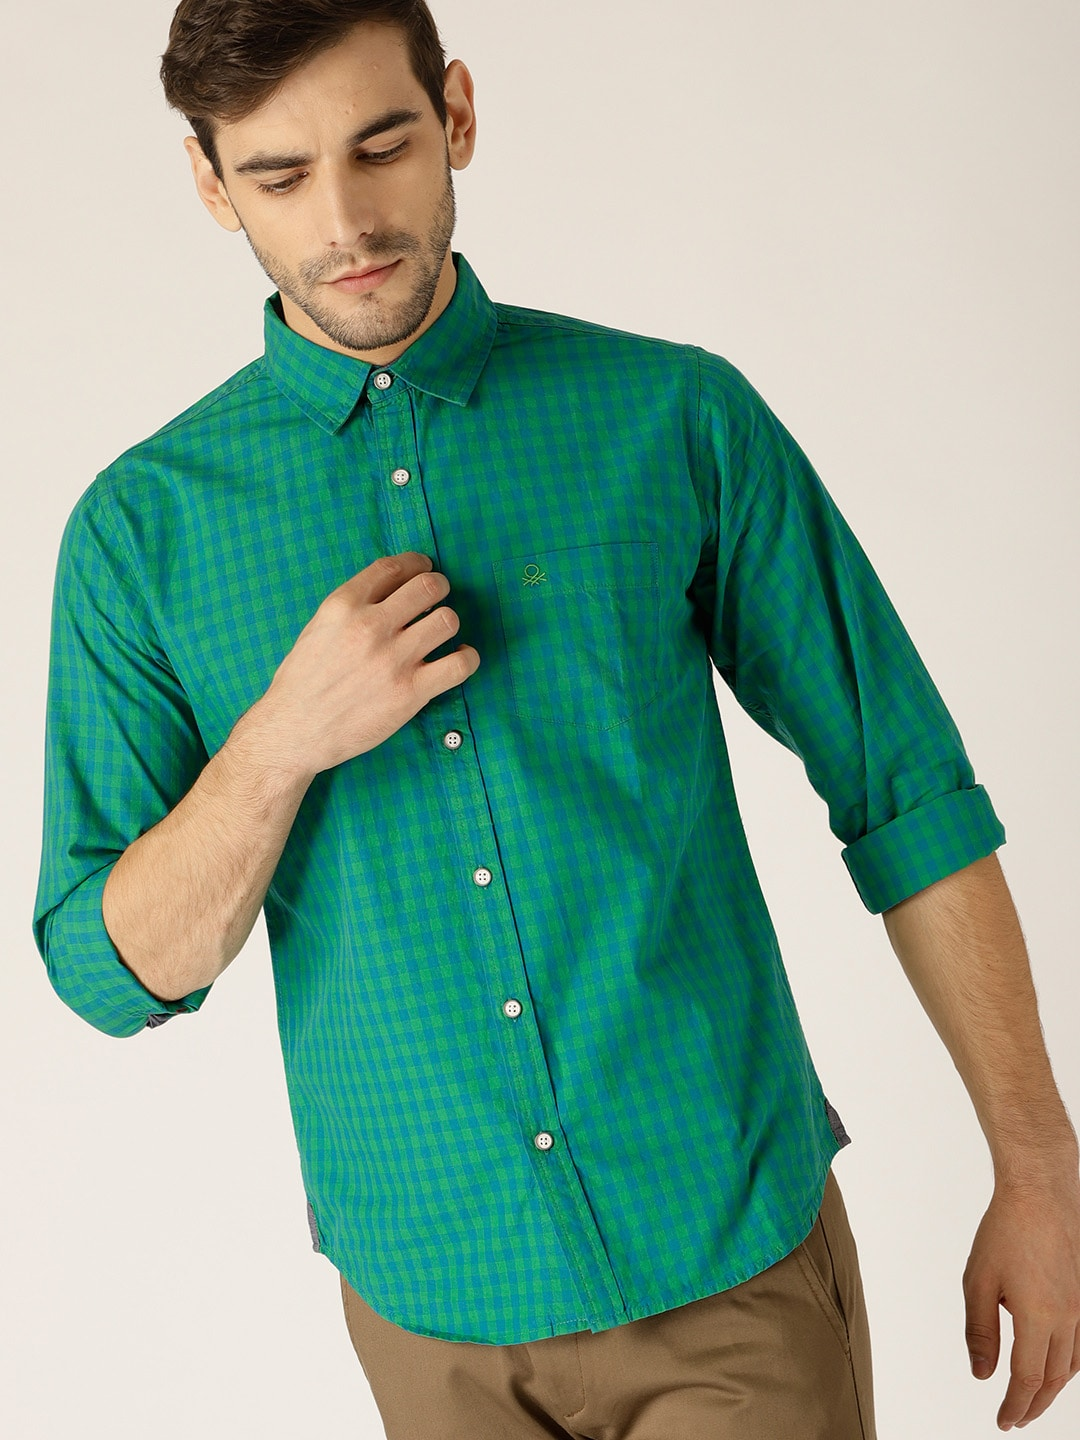 68f90583028d1 Olive Green Color Shirt - Buy Olive Green Color Shirt online in India